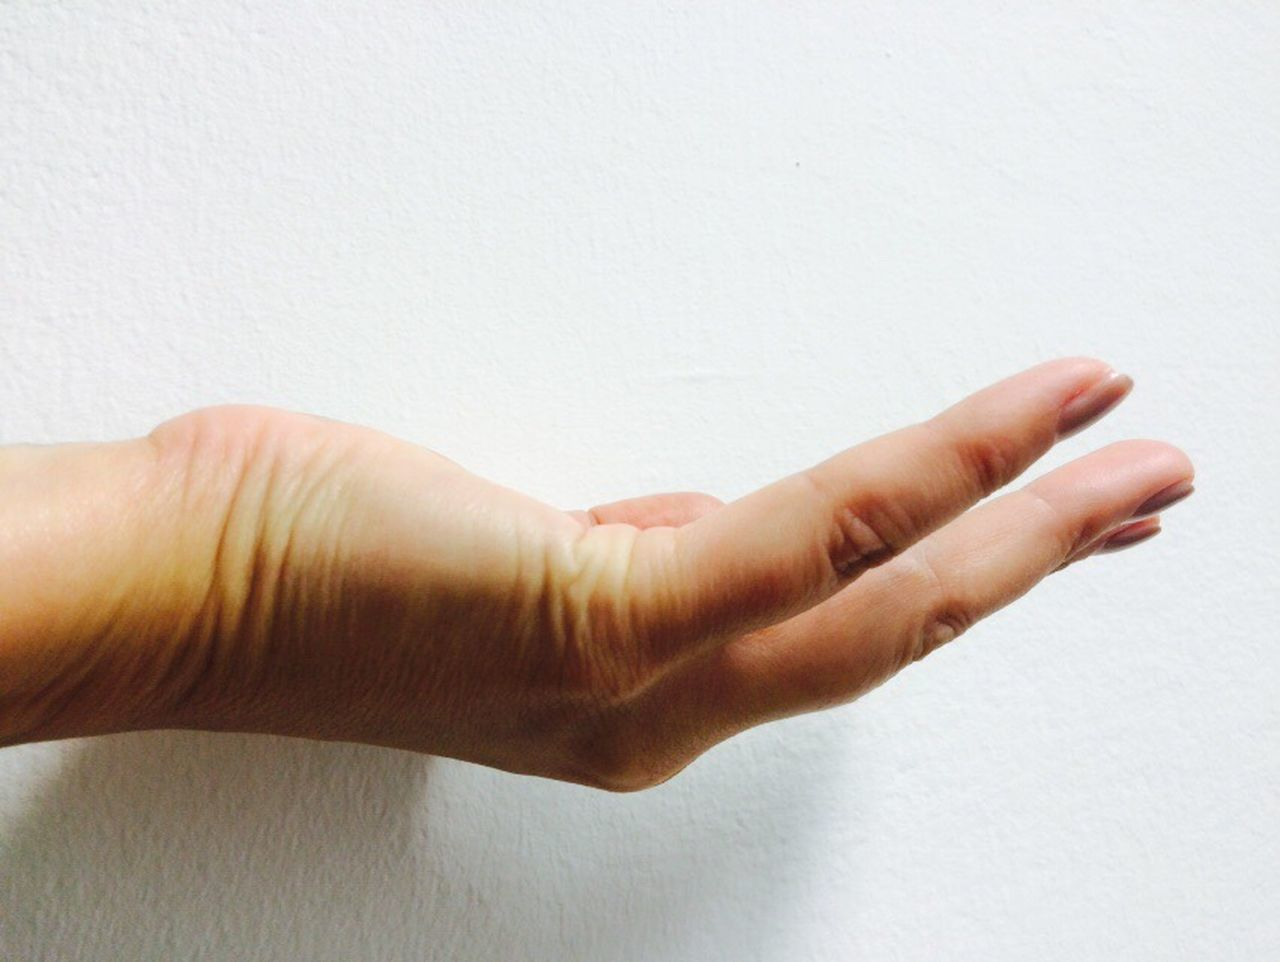 Hand Gift Check This Out Beautiful Human Representation Human Body Part Finger Fingers Give Helping Refugees Hello World Taking Photos Wanted Want Wanting This!   Wants  Love ♥ Hands Fun Friends ArtWork Eyem Gallery Photography IPhoneography